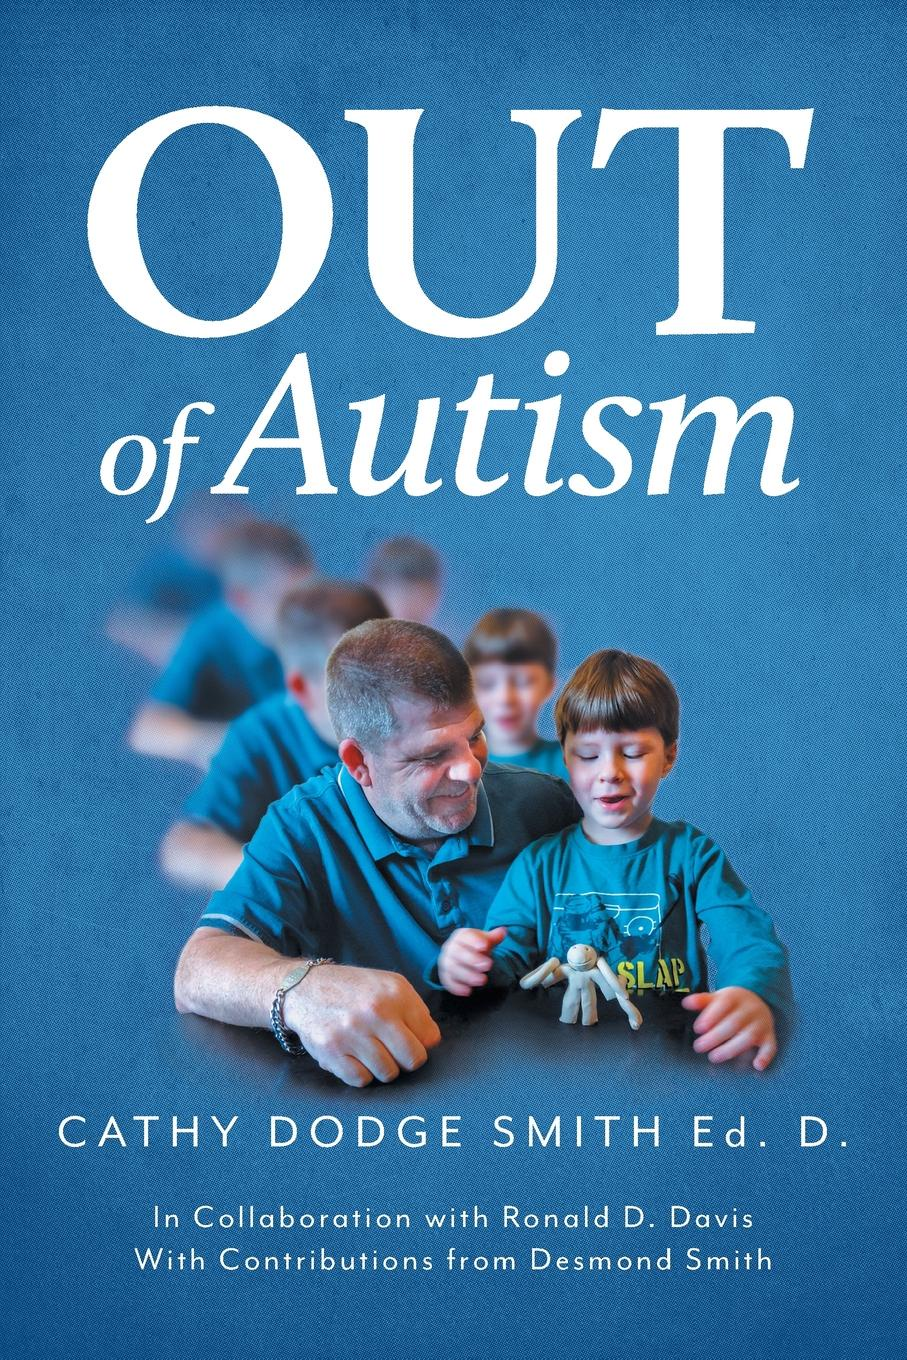 Cathy Dodge Smith Out of Autism symptoms of autism in adhd a familial trait